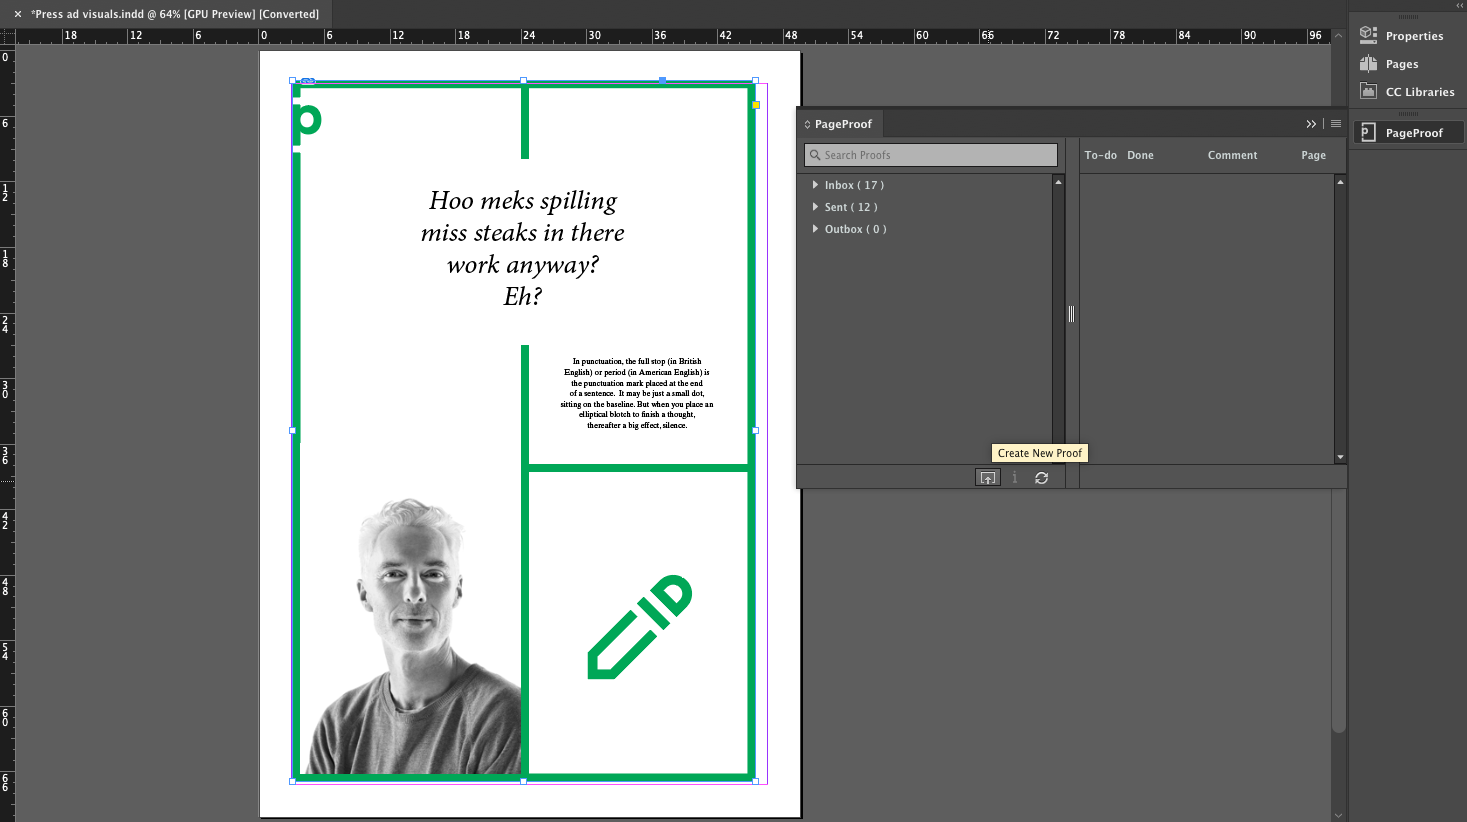 PageProof panel in Adobe InDesign